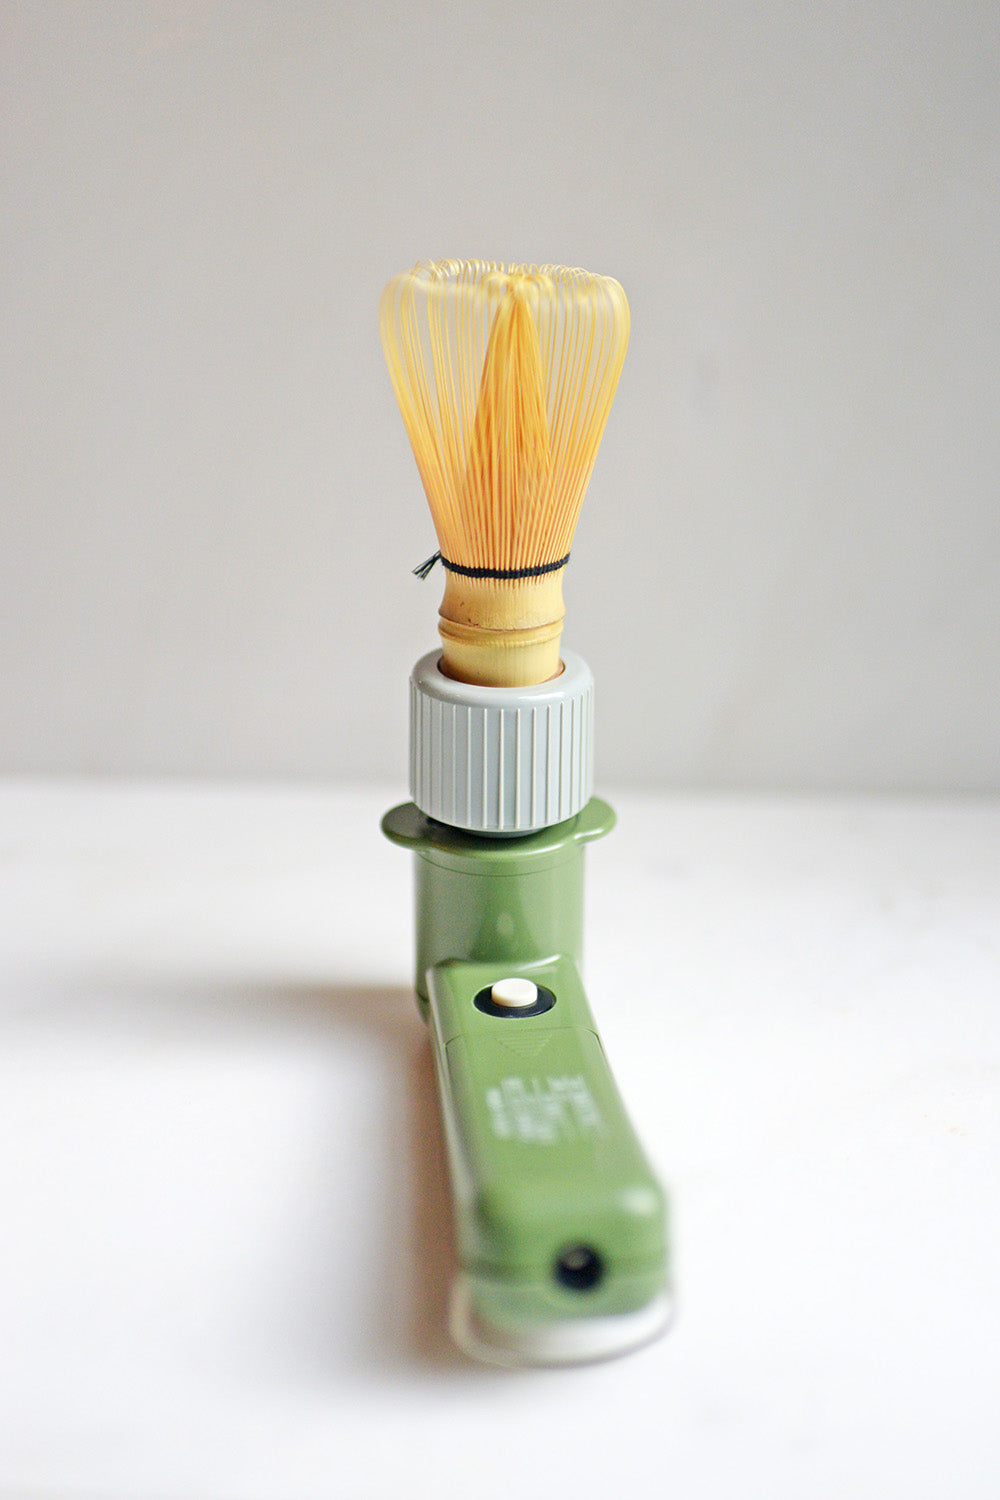 The Matchaful Shaka Shaka - Electric Whisk - Matchaful